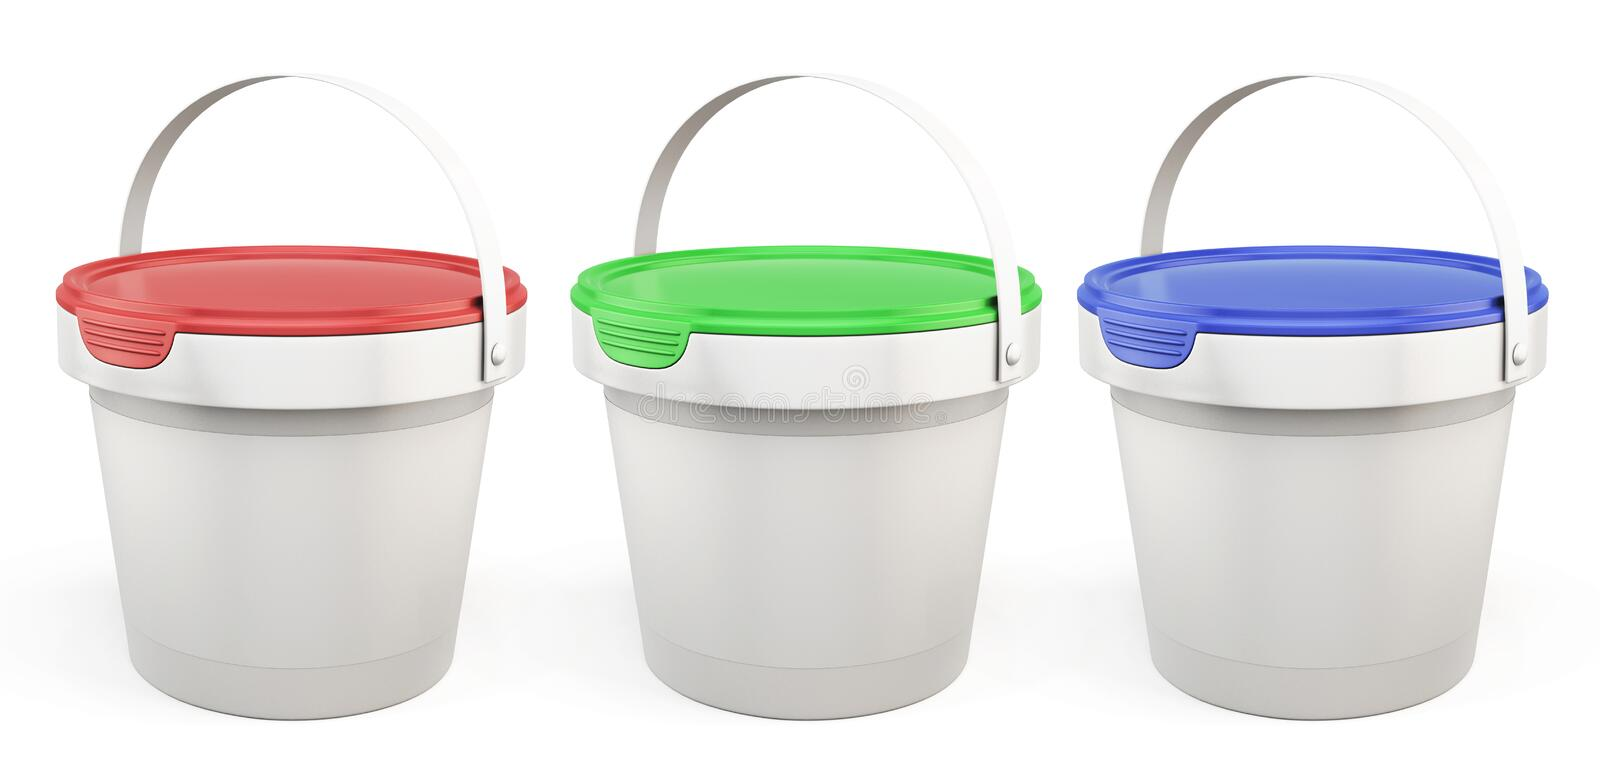 Template plastic buckets with lids various colors. 3d. vector illustration